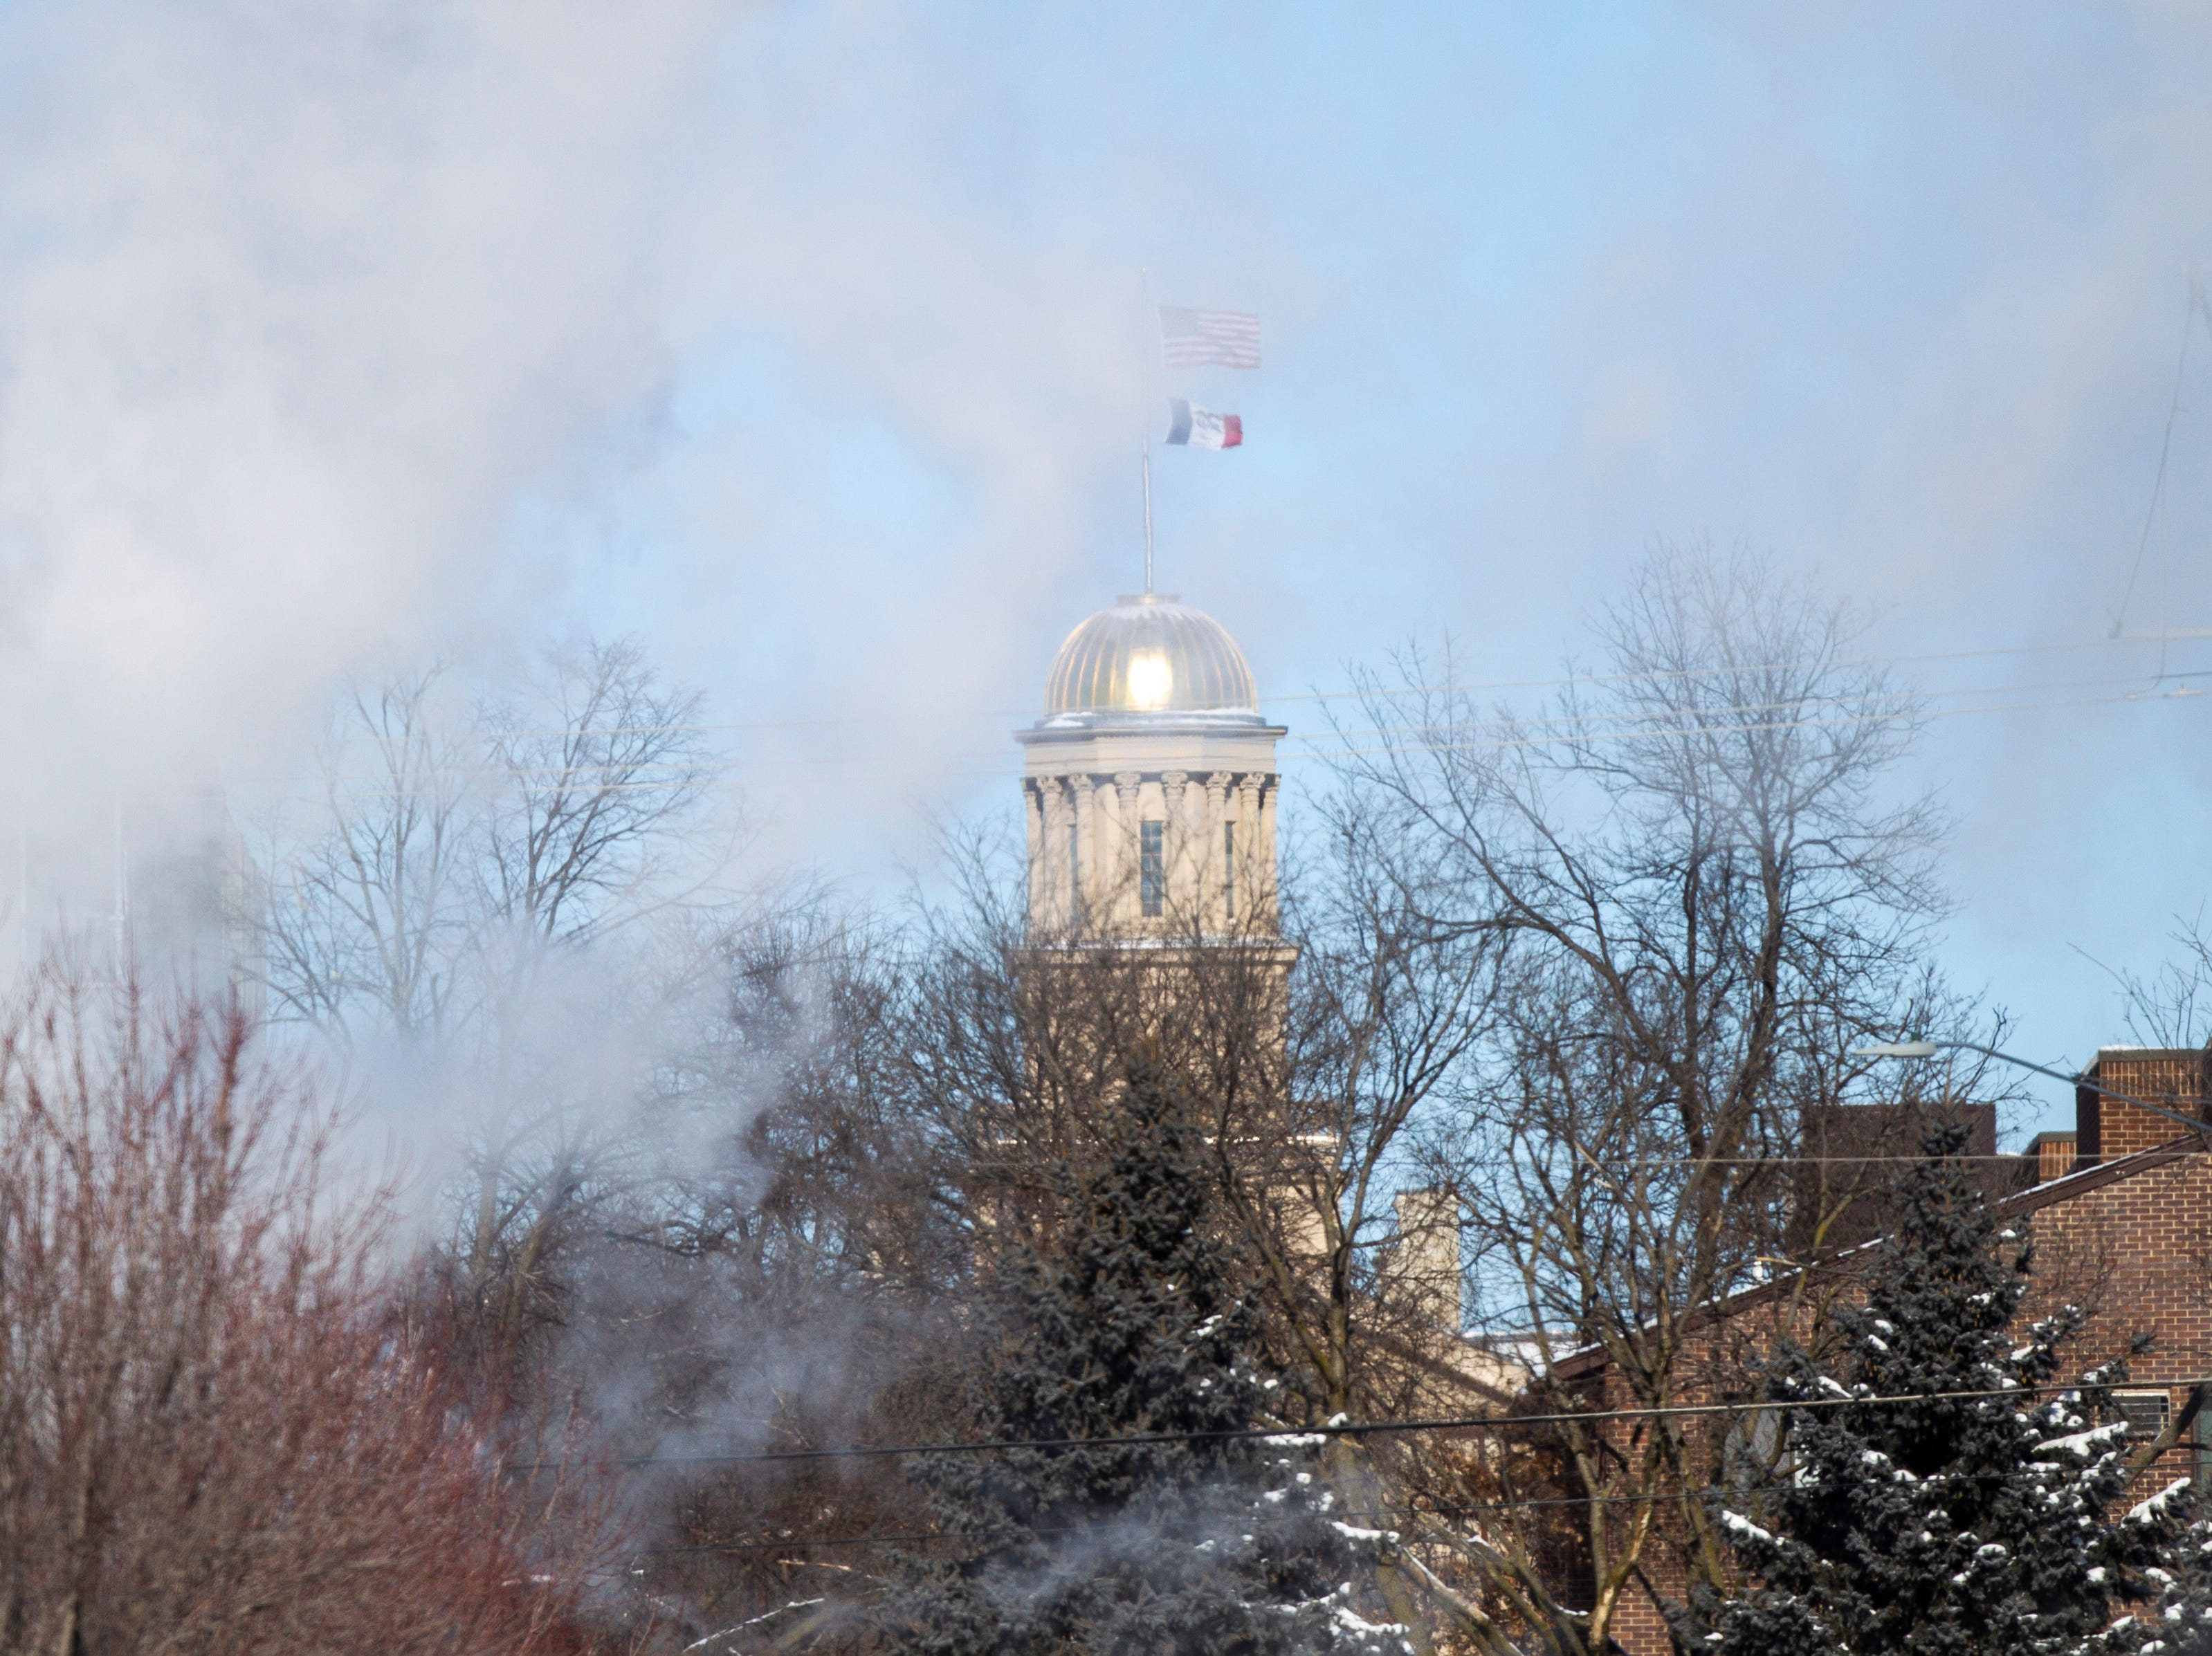 Steam flows through the frigid air in front of the Old Capitol Building on Wednesday, Jan. 30, 2019, along Capitol Street in Iowa City, Iowa.